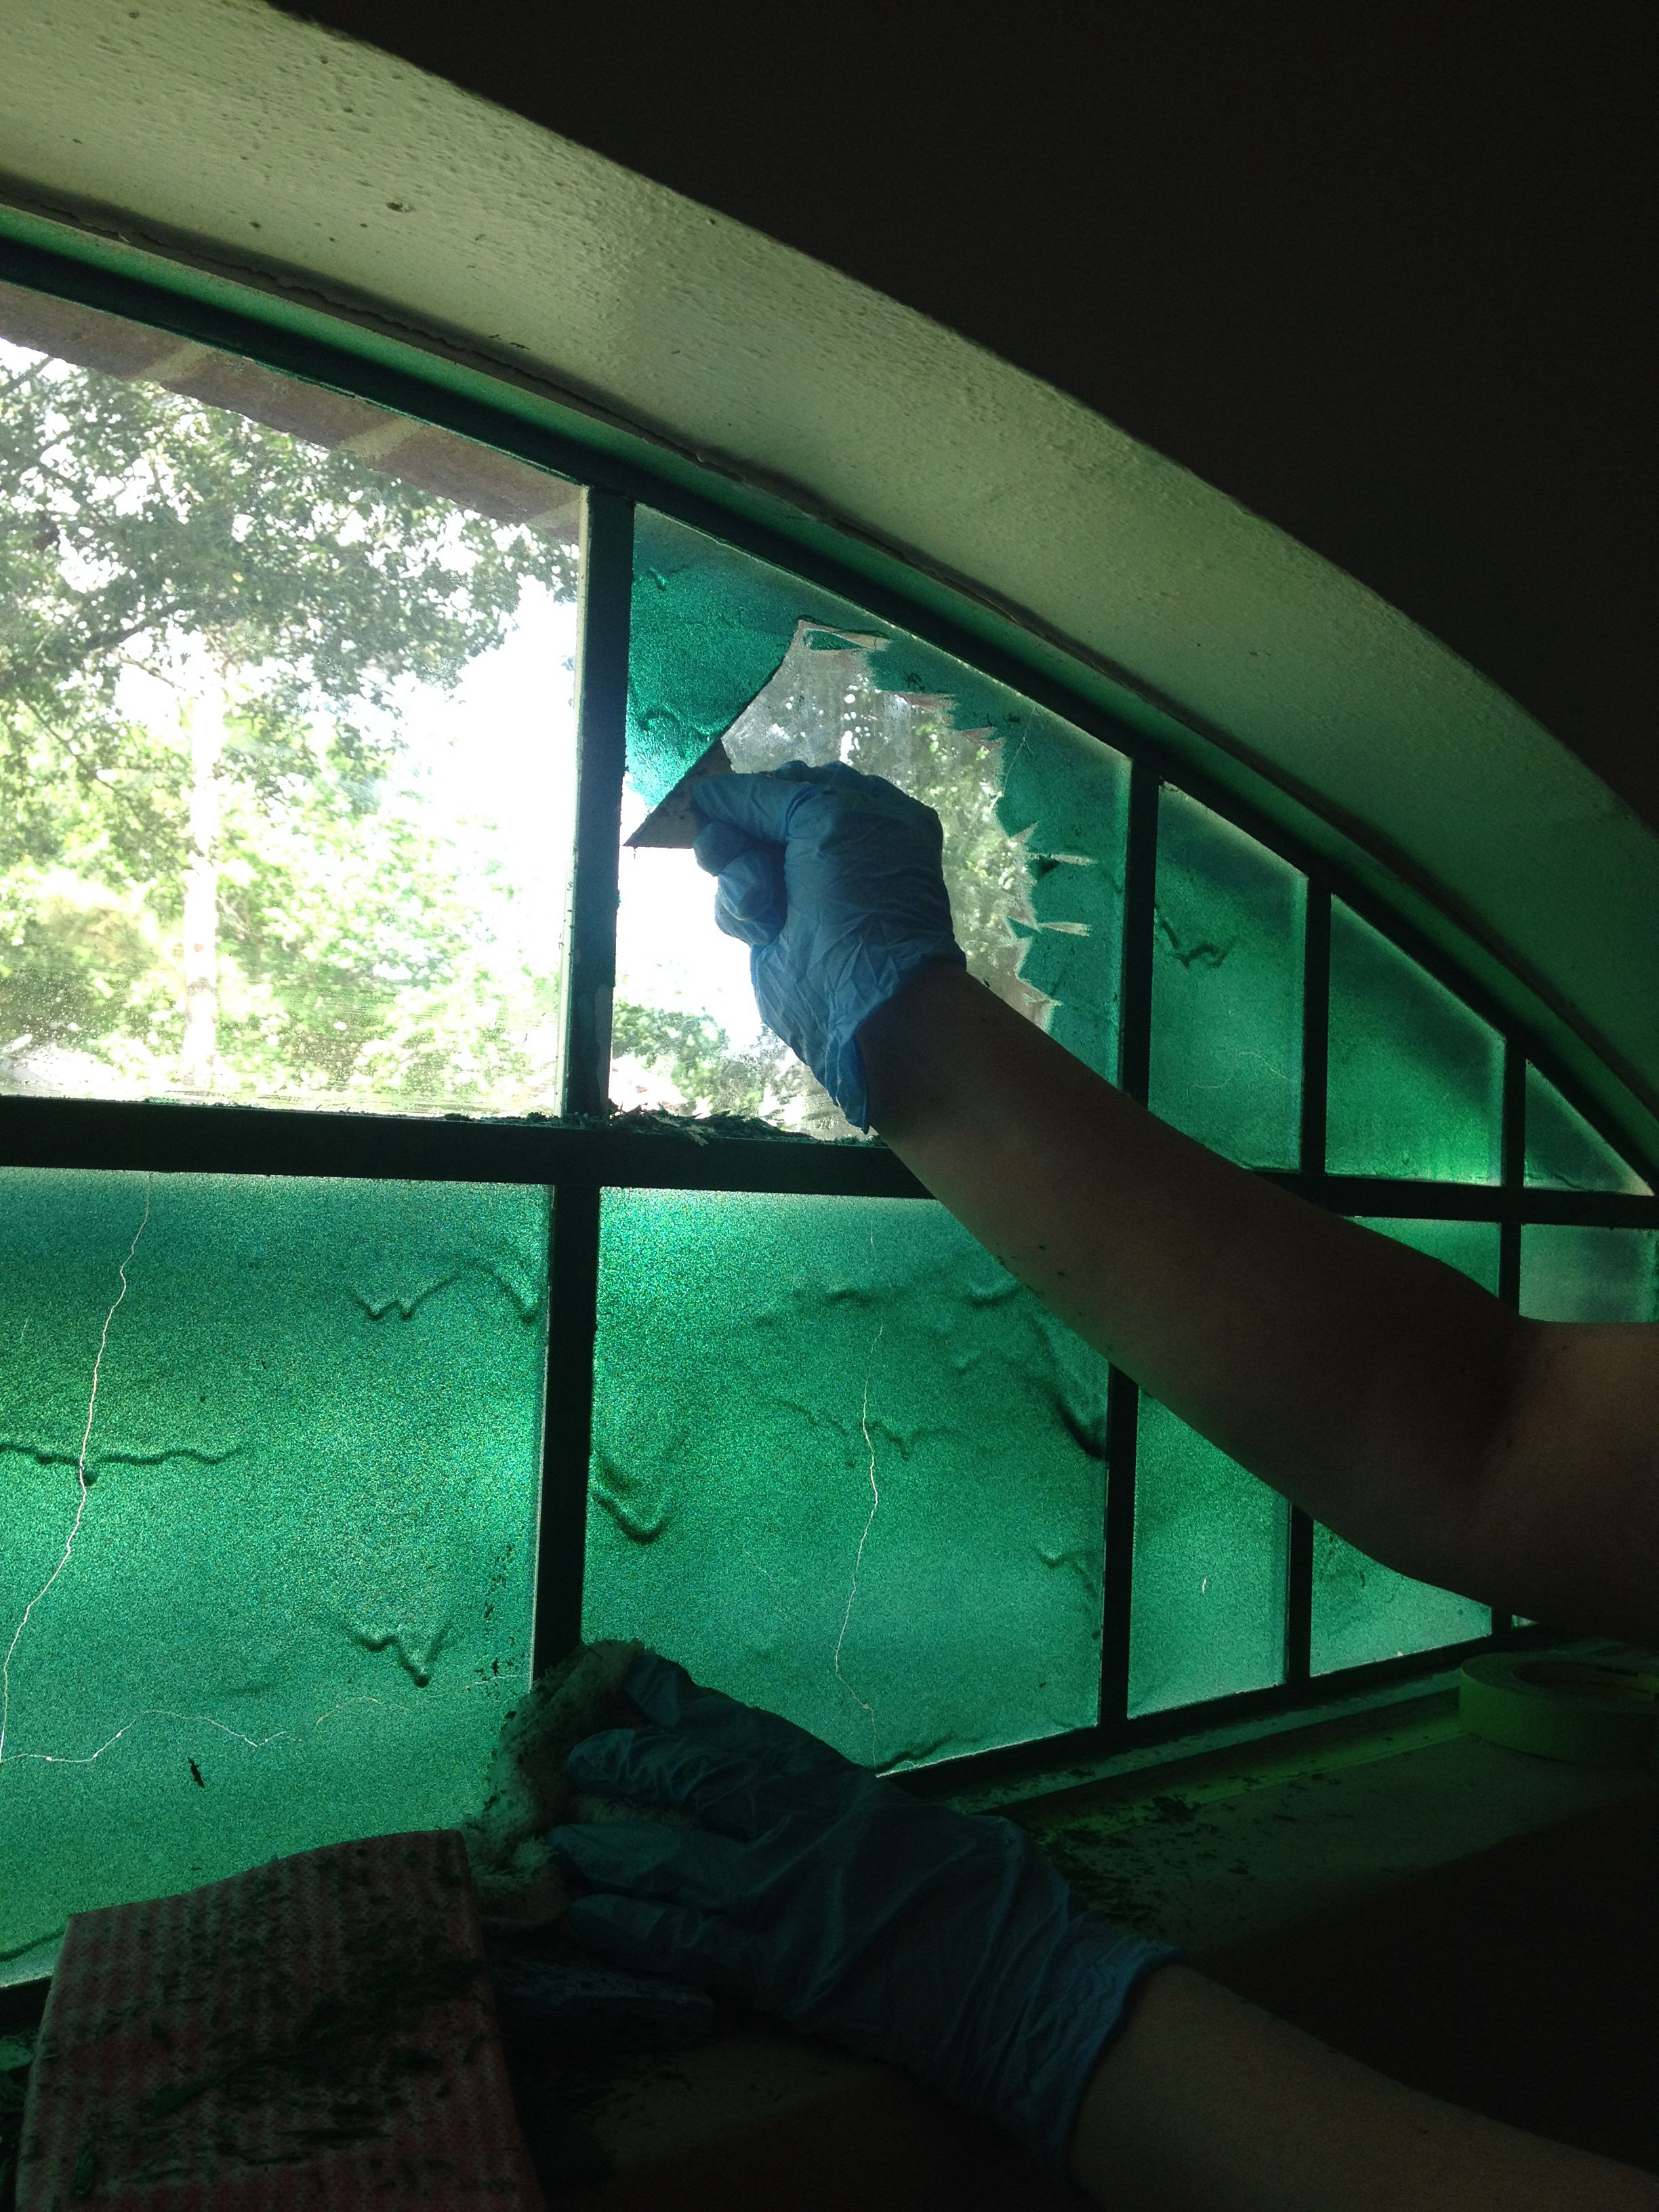 How To Remove Paint From A Glass Window Spray Googone Found At